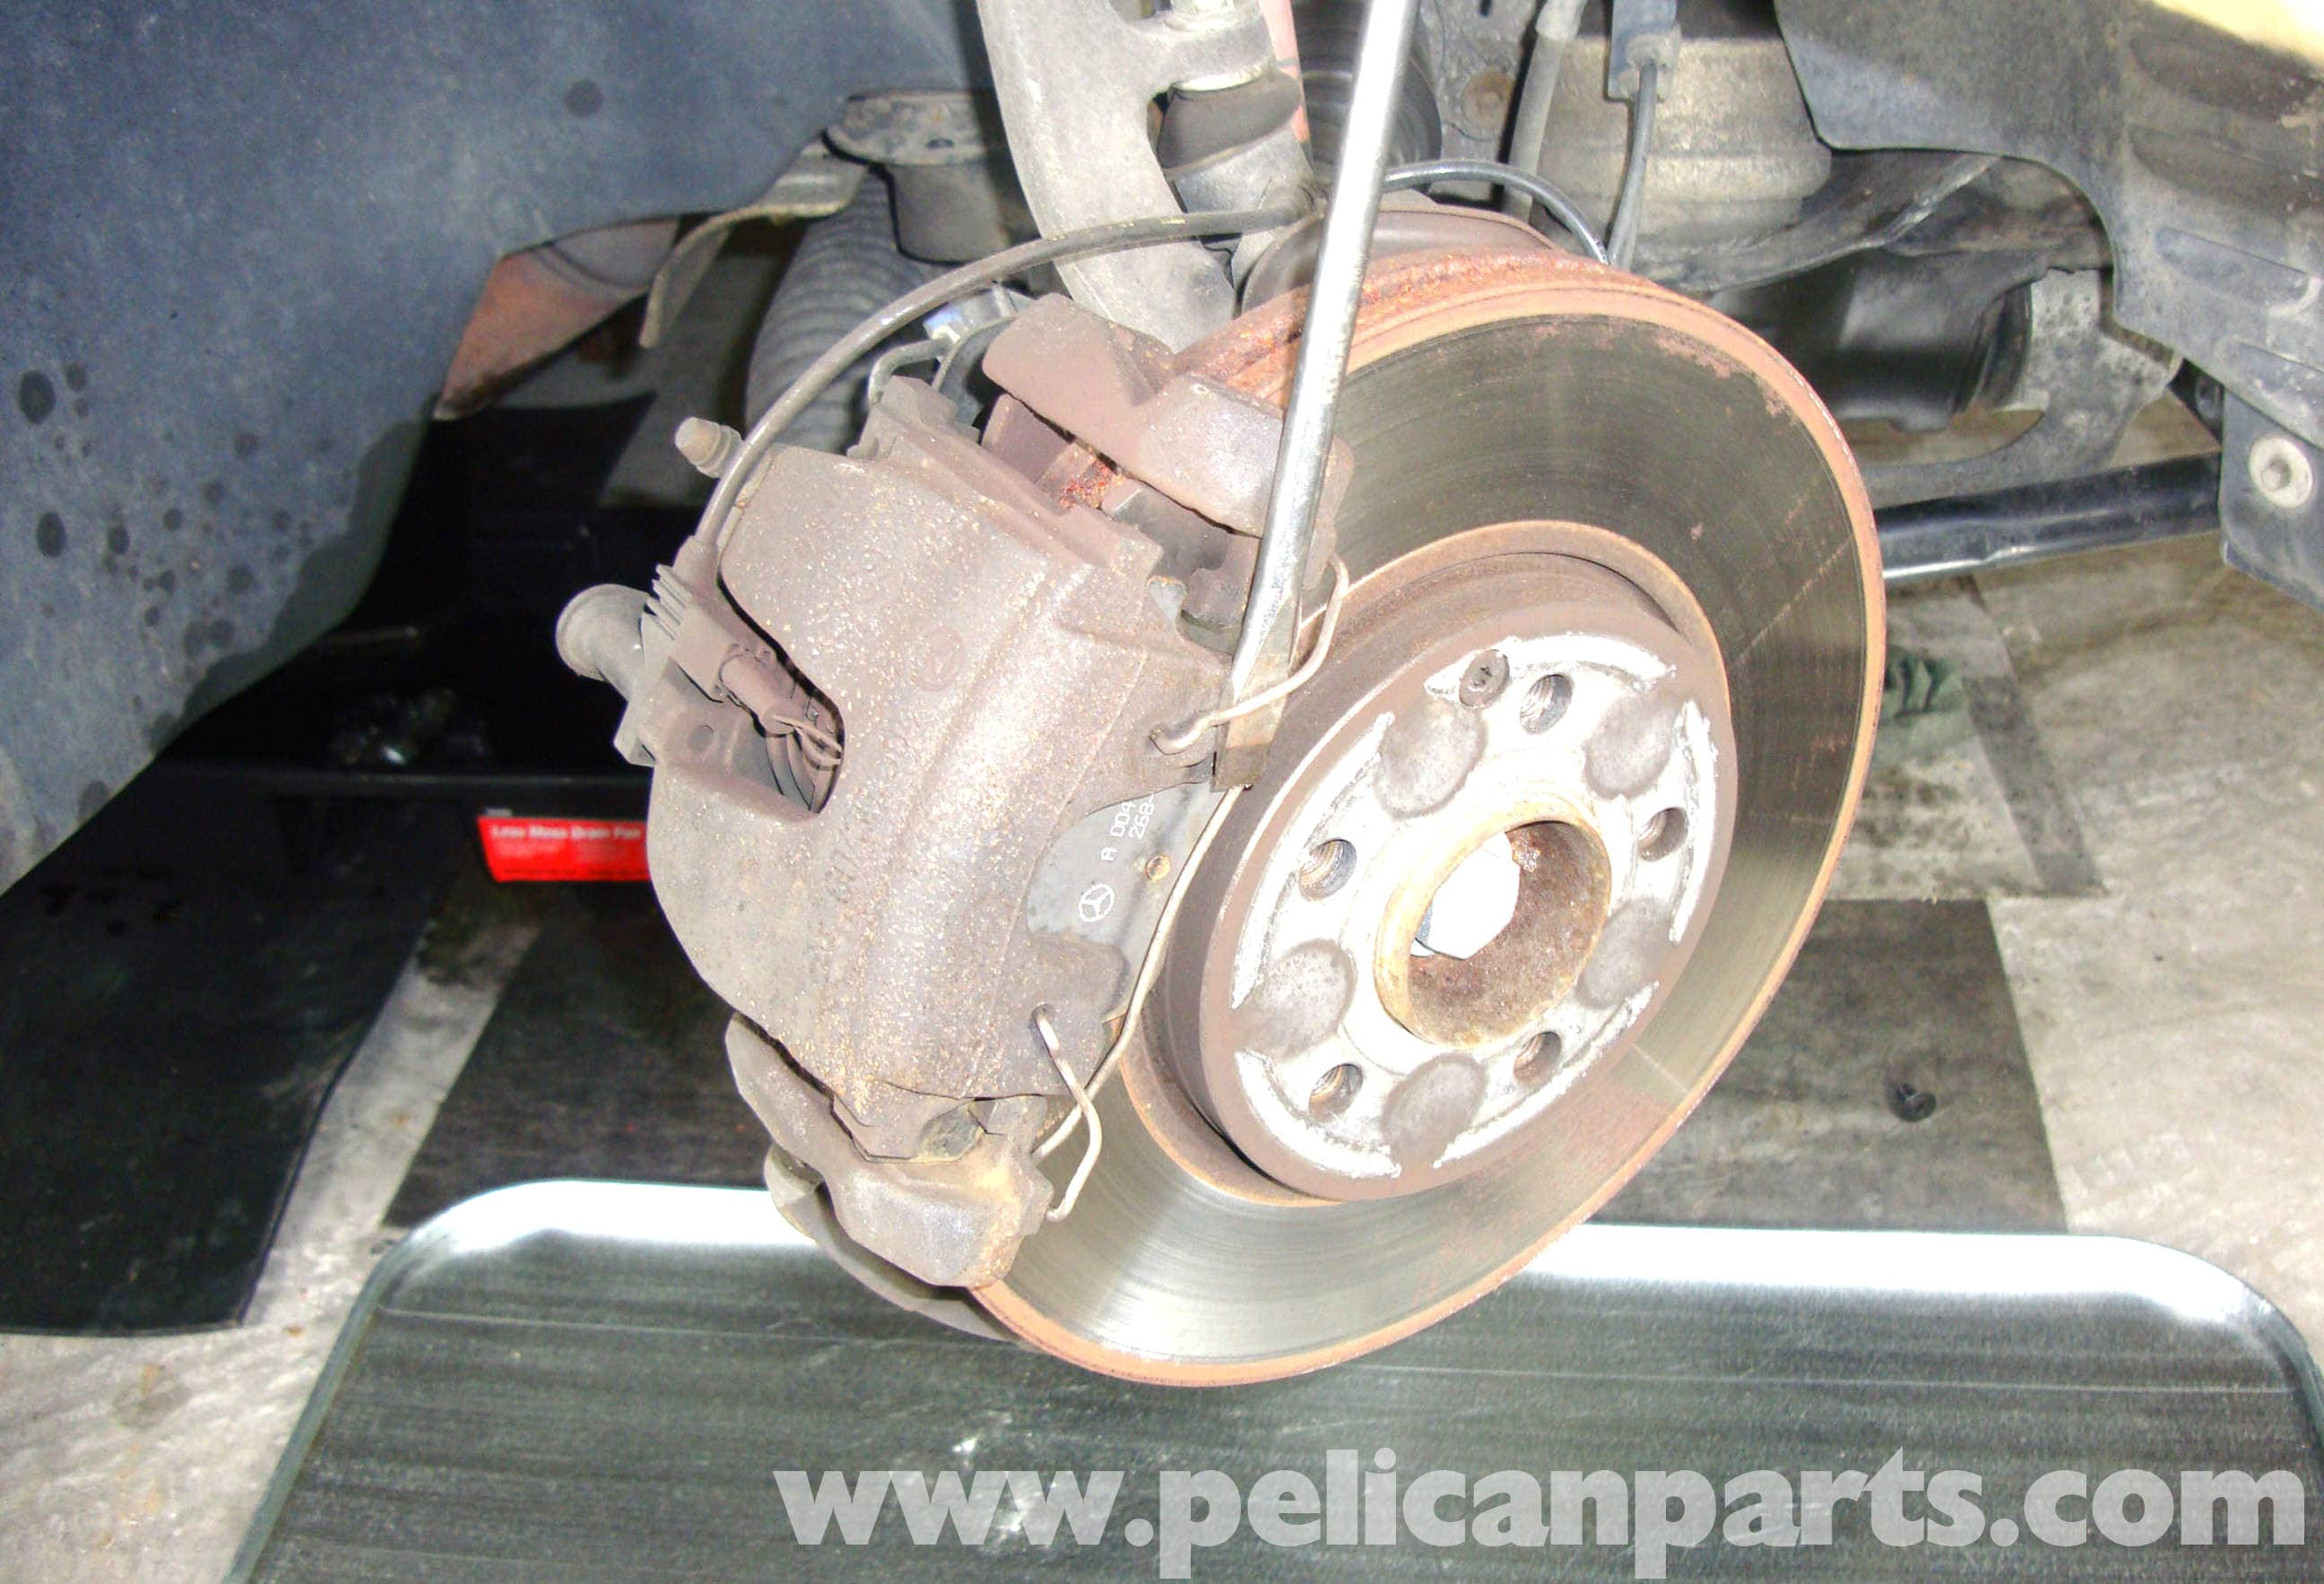 Mercedes benz w211 brake rotor replacement 2003 2009 for Mercedes benz rotors replacement